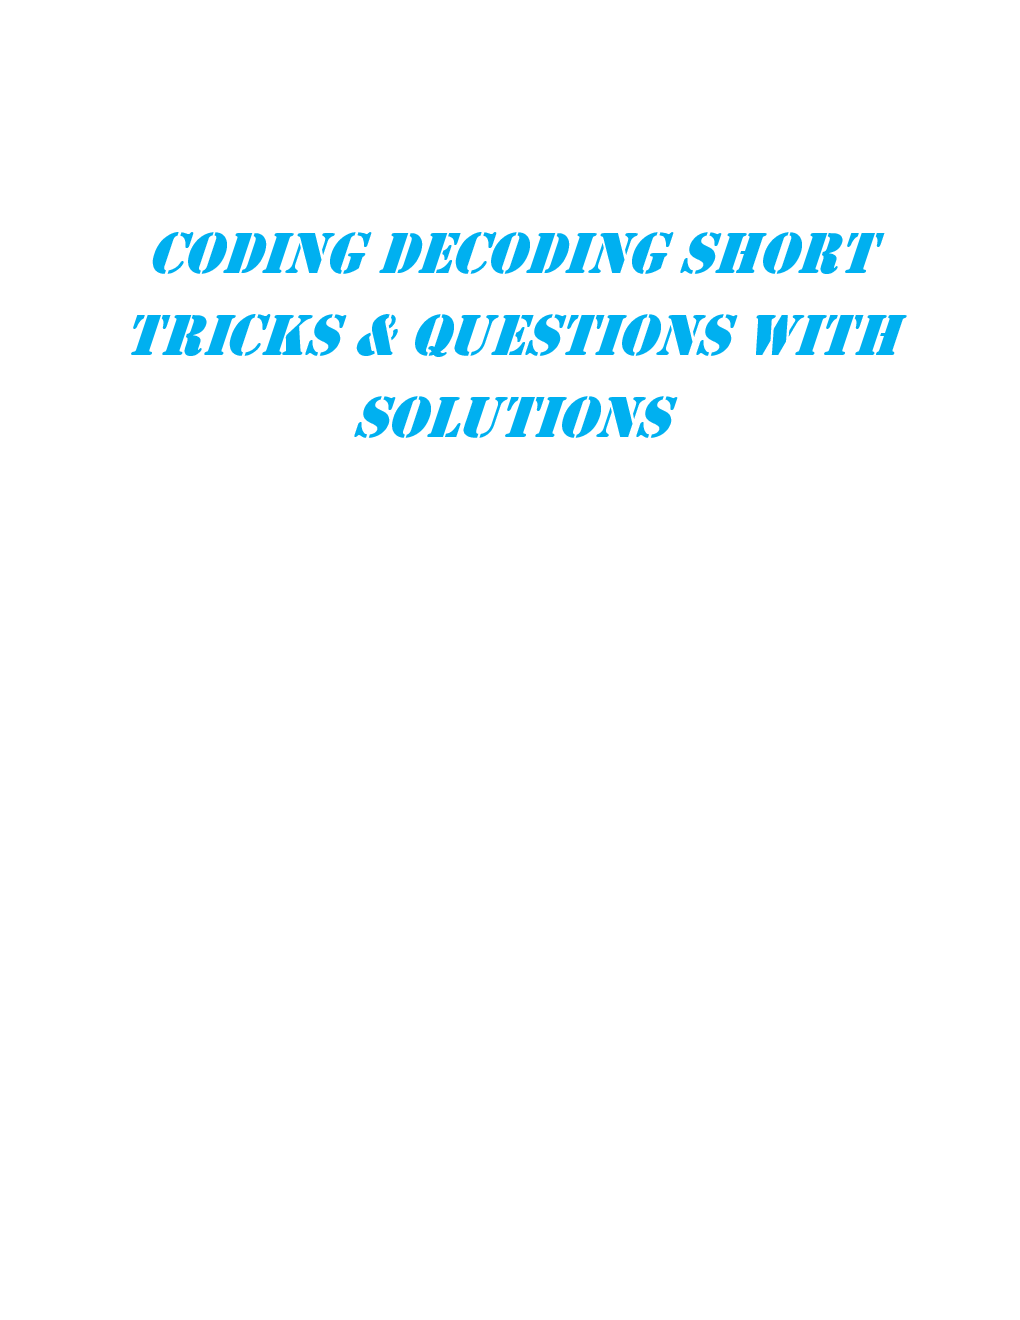 MCQs Reasoning (Coding Decoding) With Solutions - Page 2